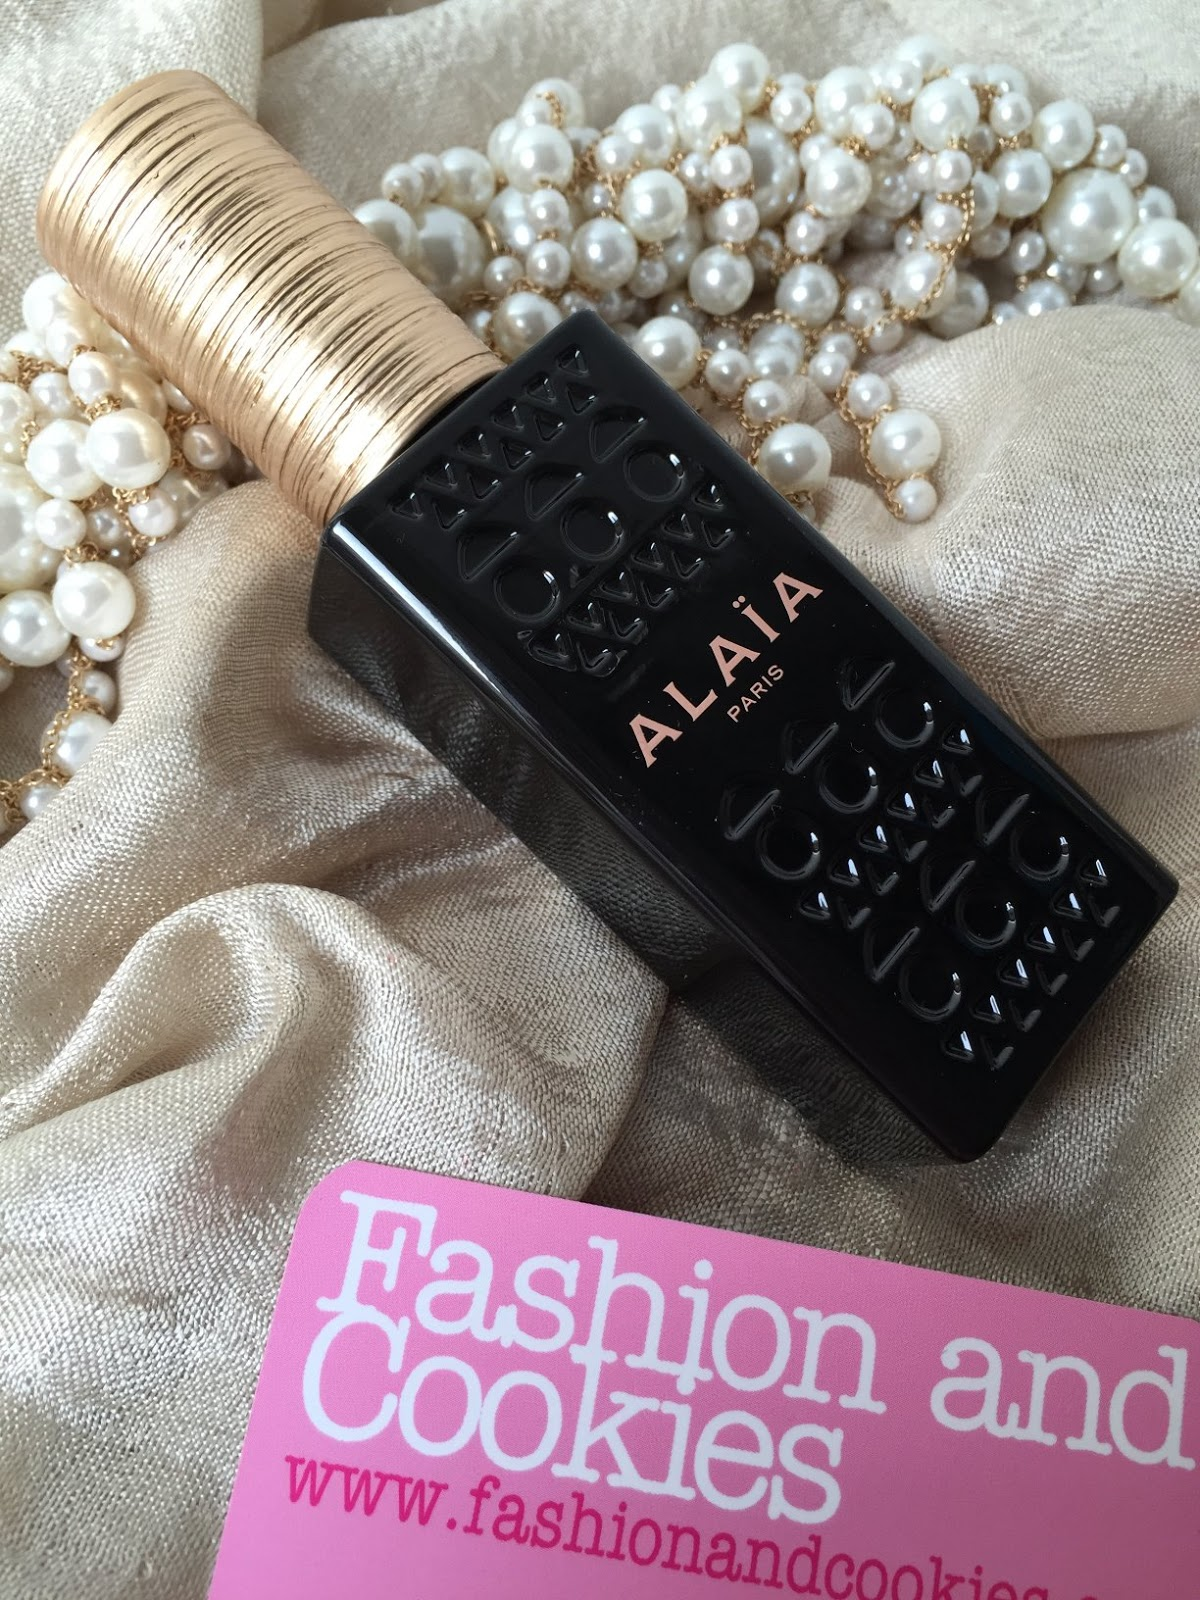 Alaïa Paris Eau de parfum review on Fashion and Cookies fashion and beauty blog, beauty blogger